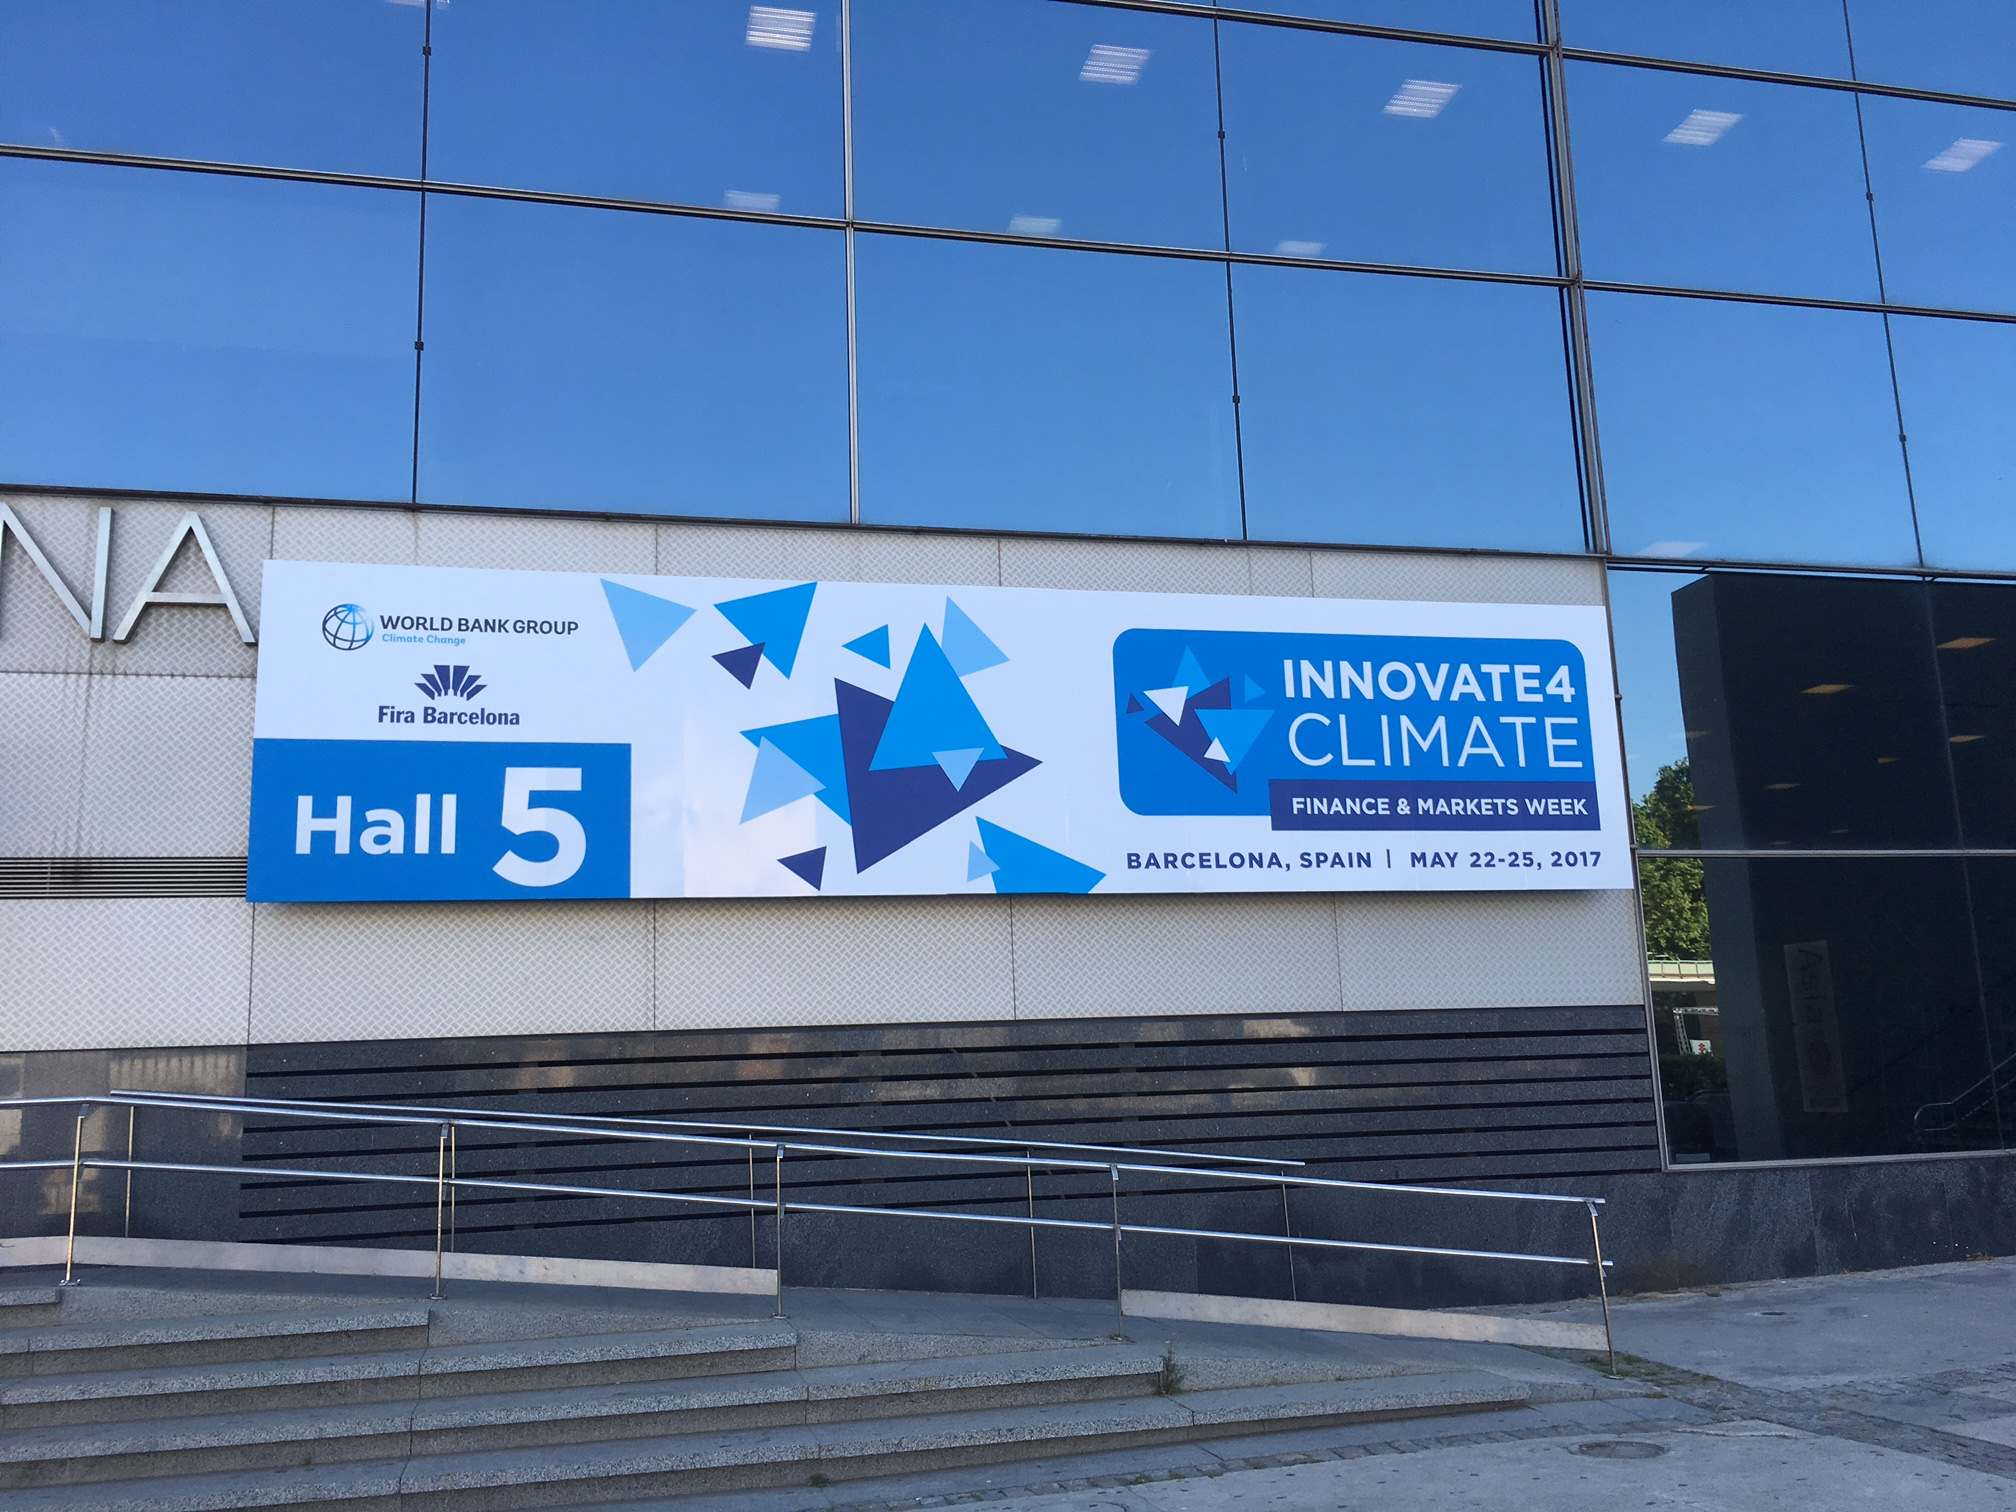 Alejandra Camara, Director of Genesis, participated in the event Innovate4Climate in Barcelona